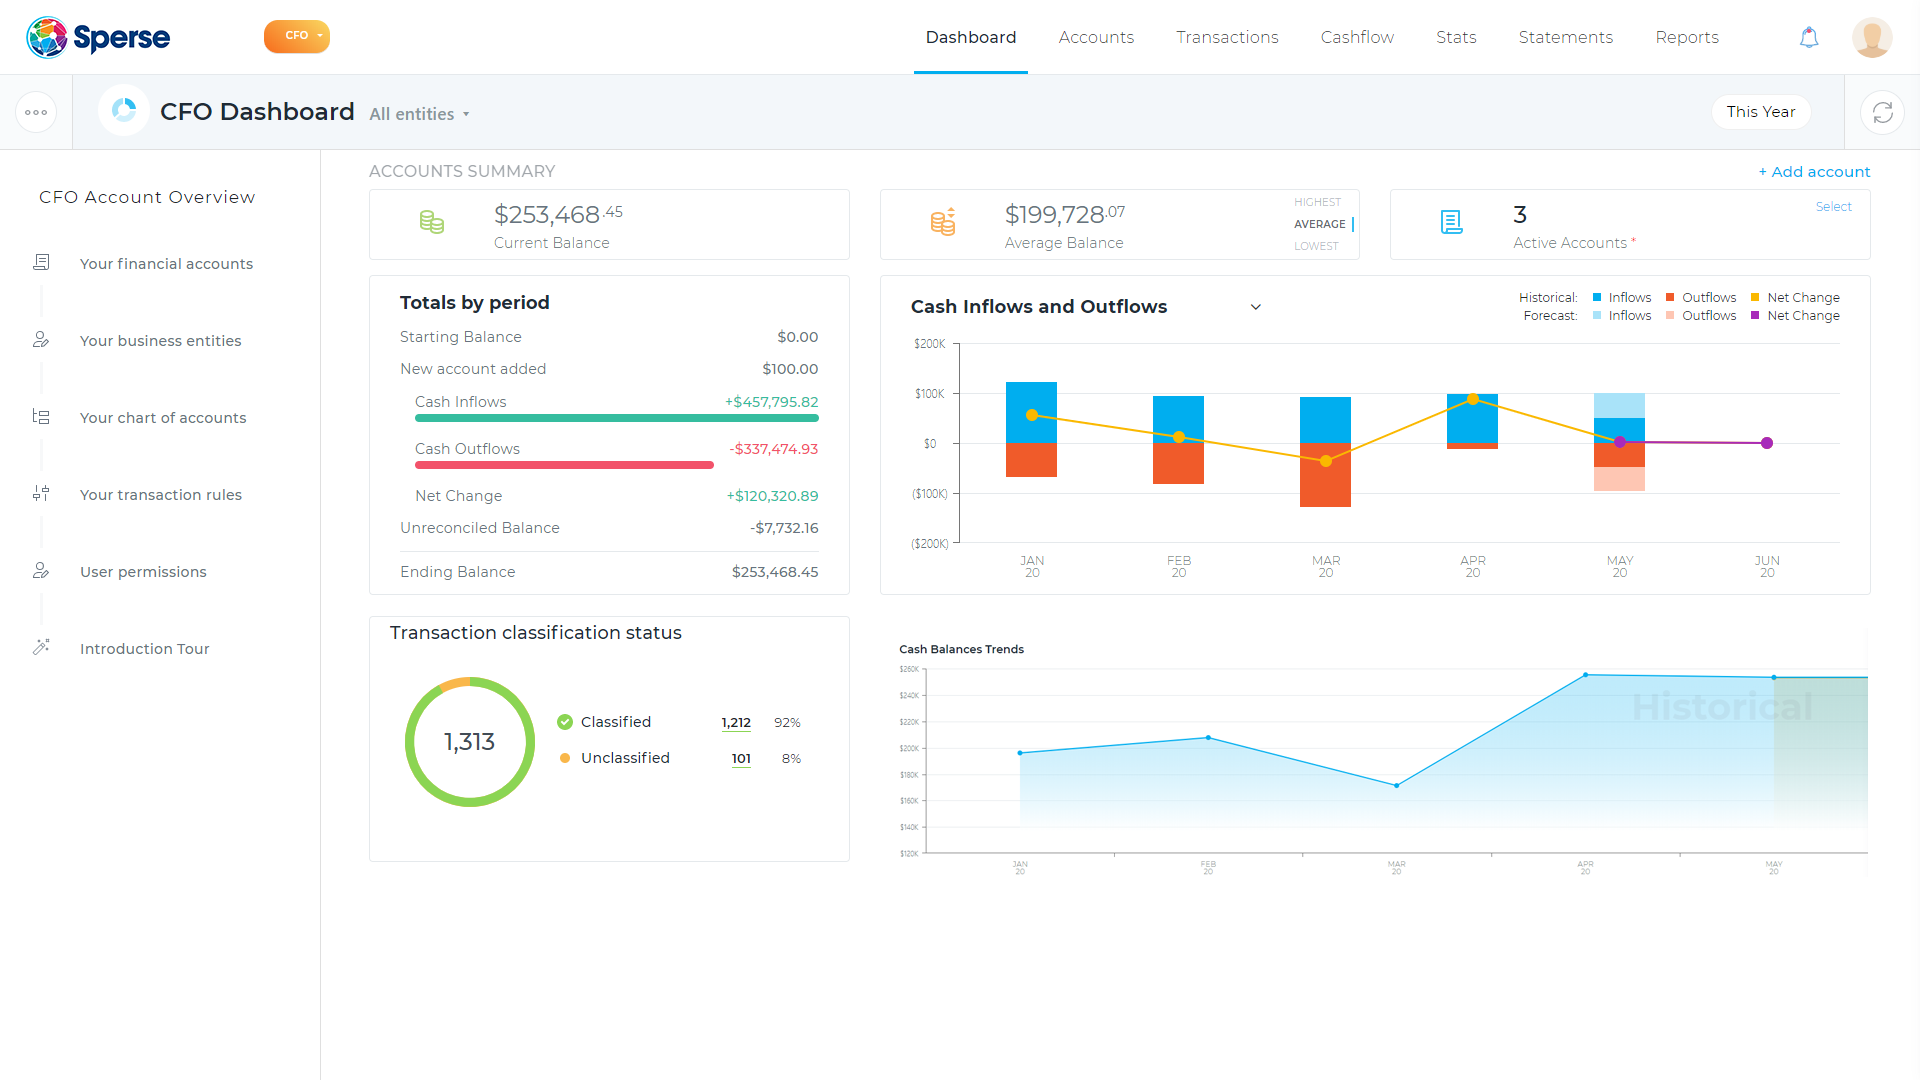 Sperse CFO Dashboard   Omar Sayed